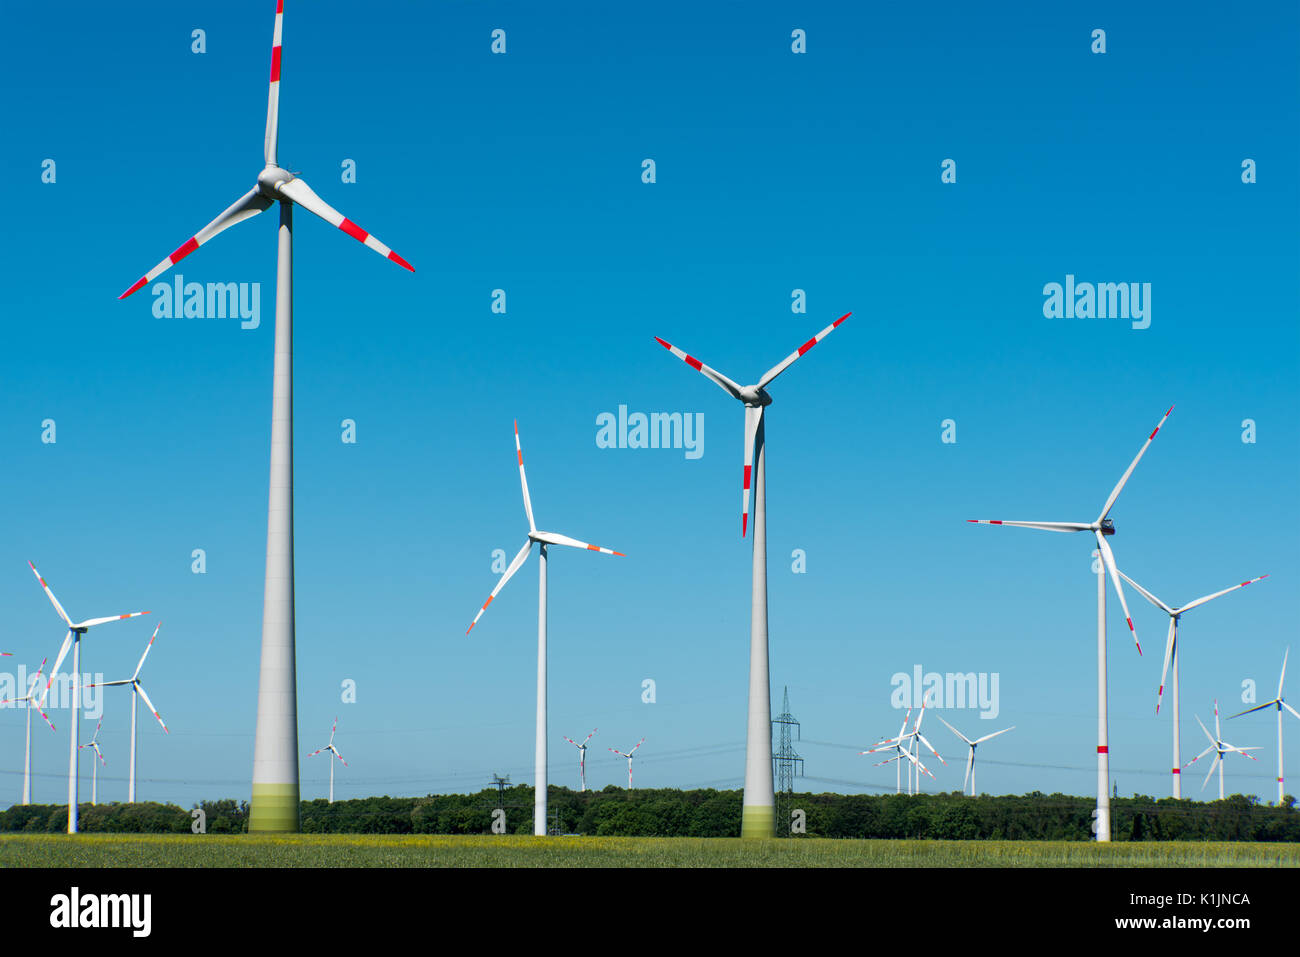 Wind energy generation seen in Germany - Stock Image